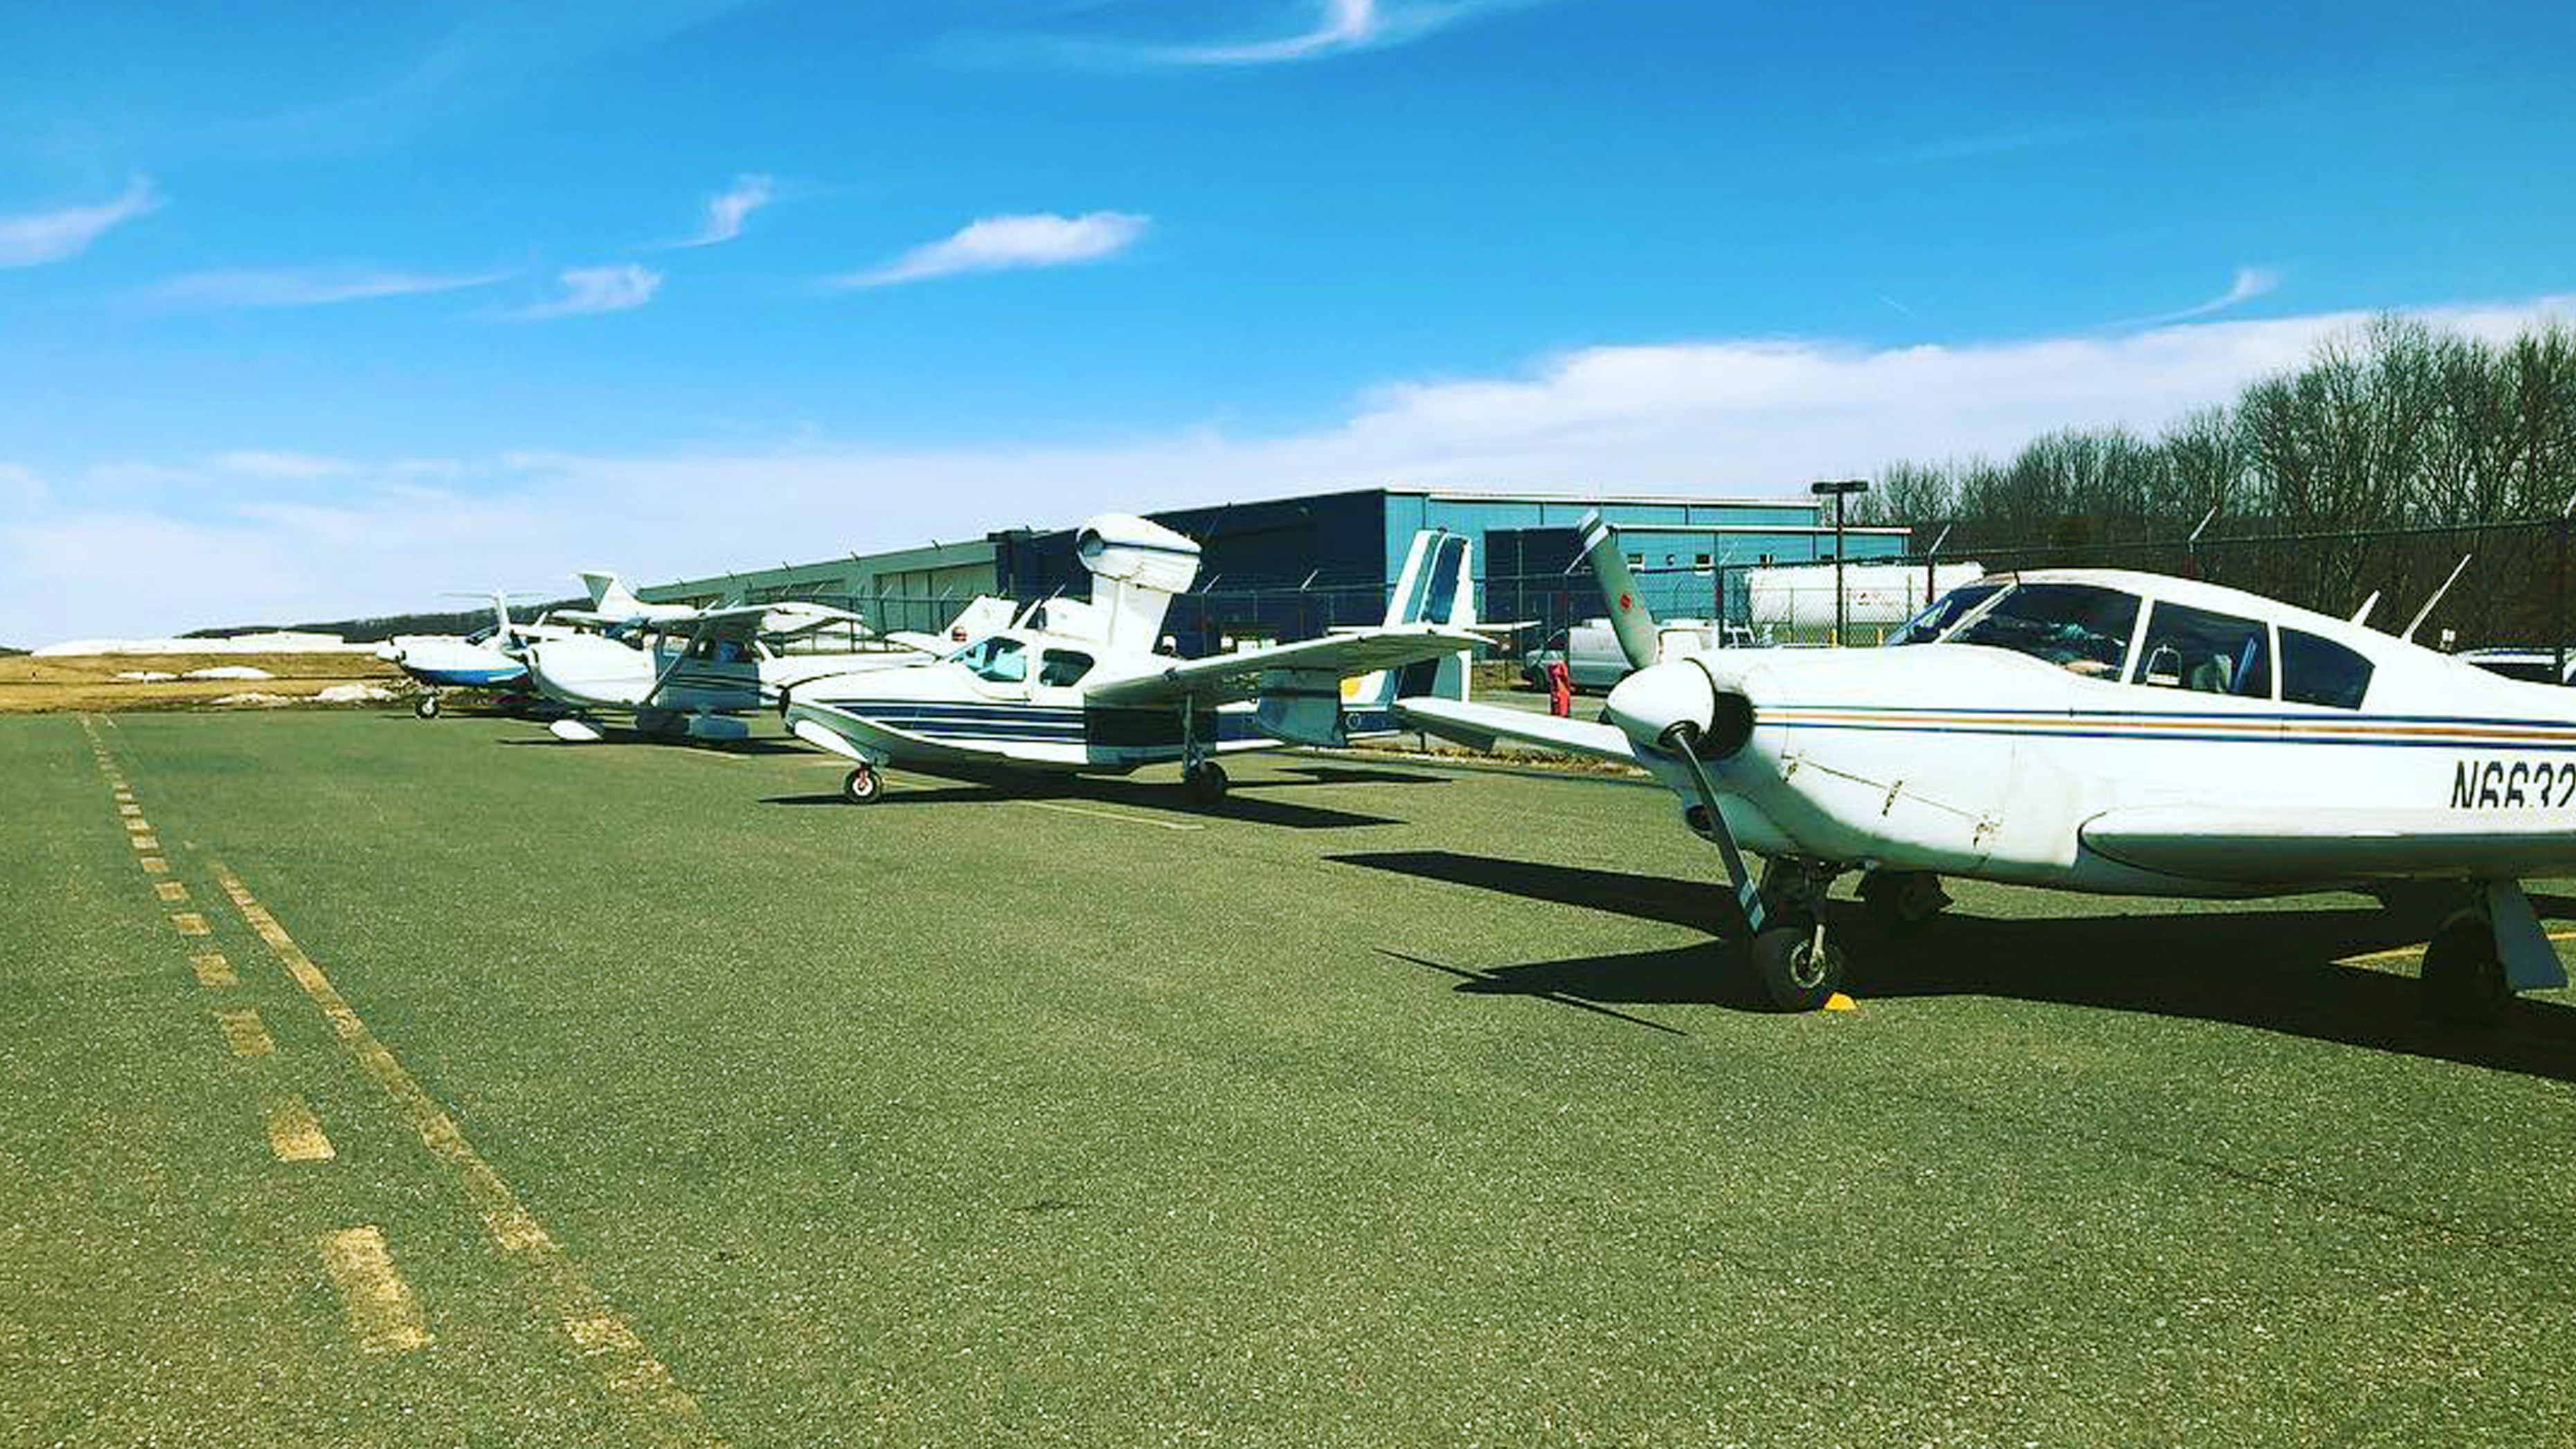 View of several airplanes at the Waterbury-Oxford Airport